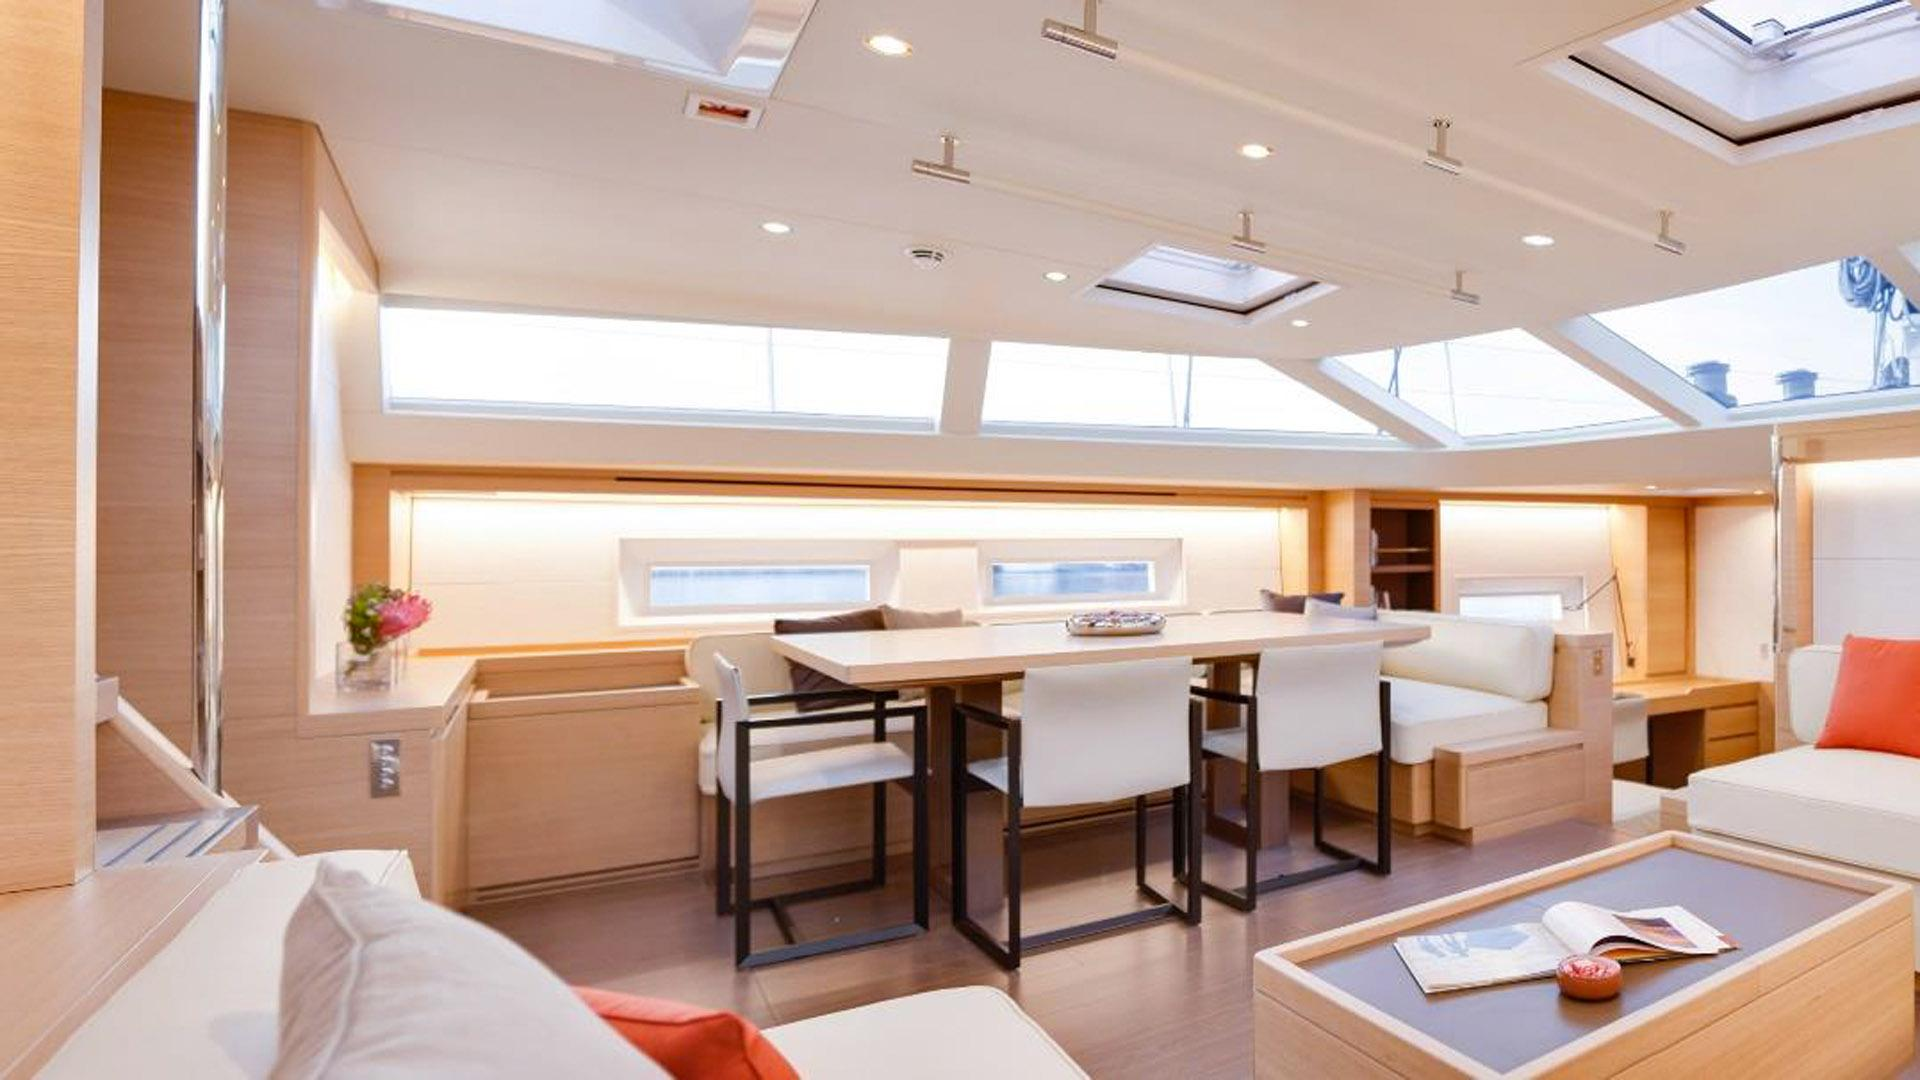 crossbow sailing yacht southern wind shipyard sws 102 2016 32m dining area